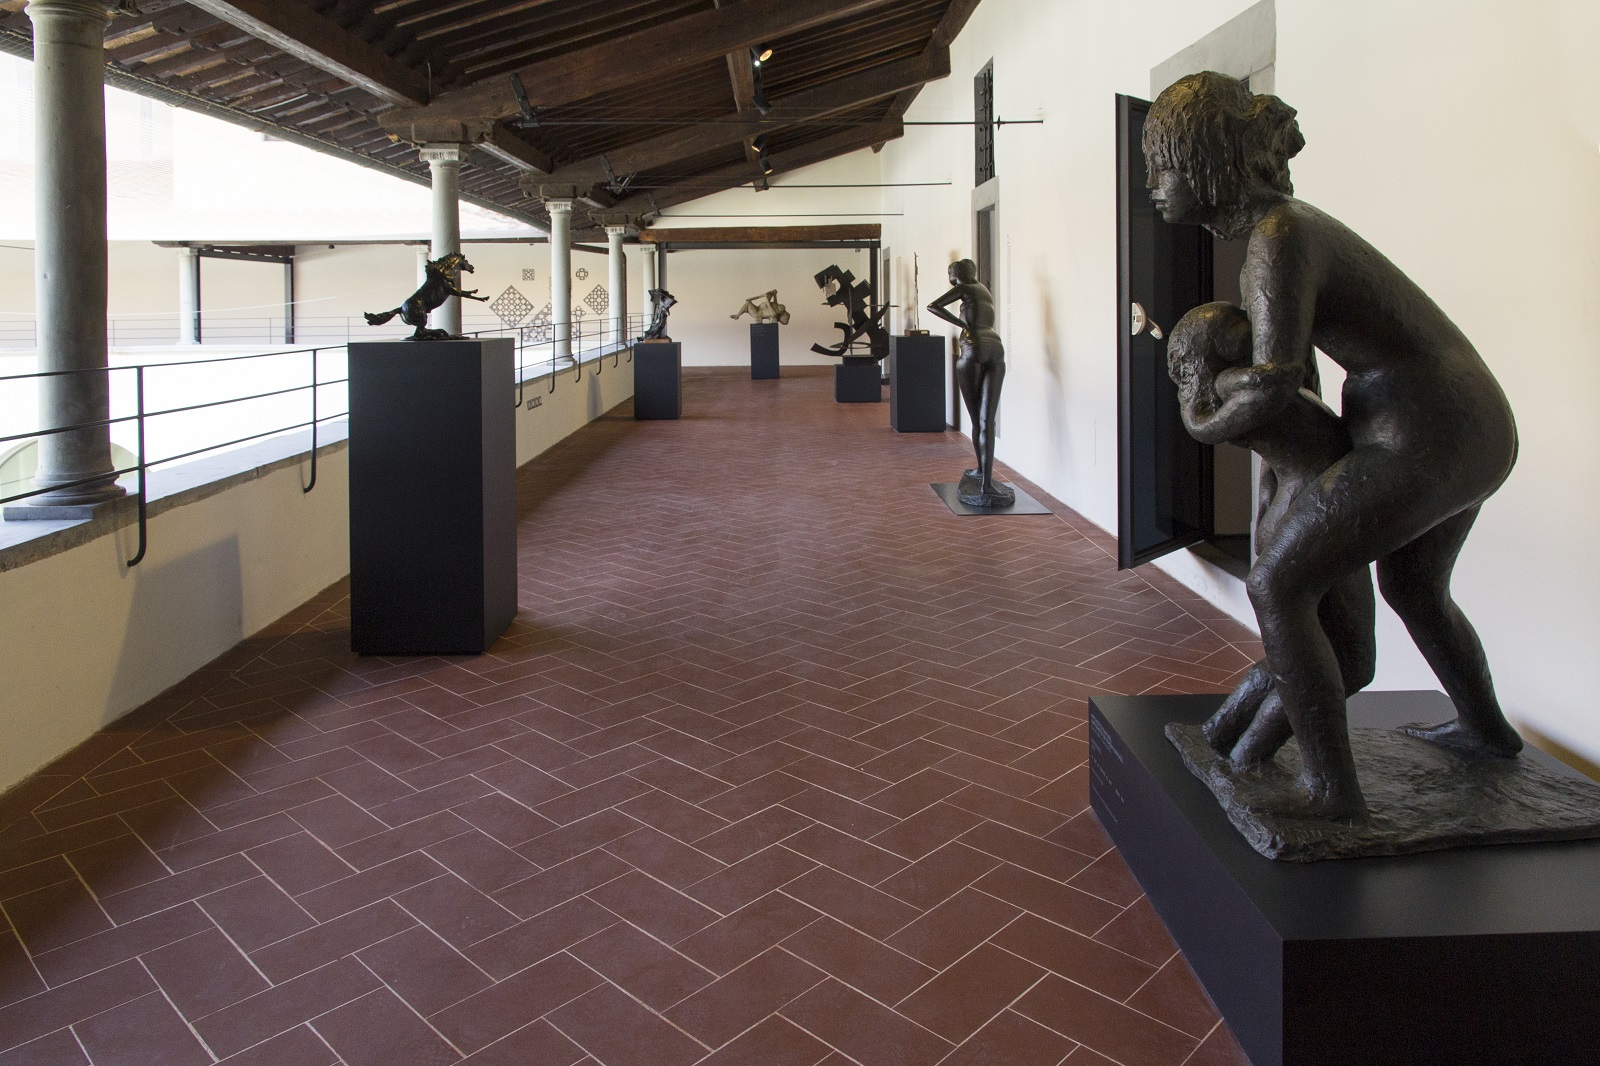 Newly restored sculpture in the Loggia at the Museo Novecento